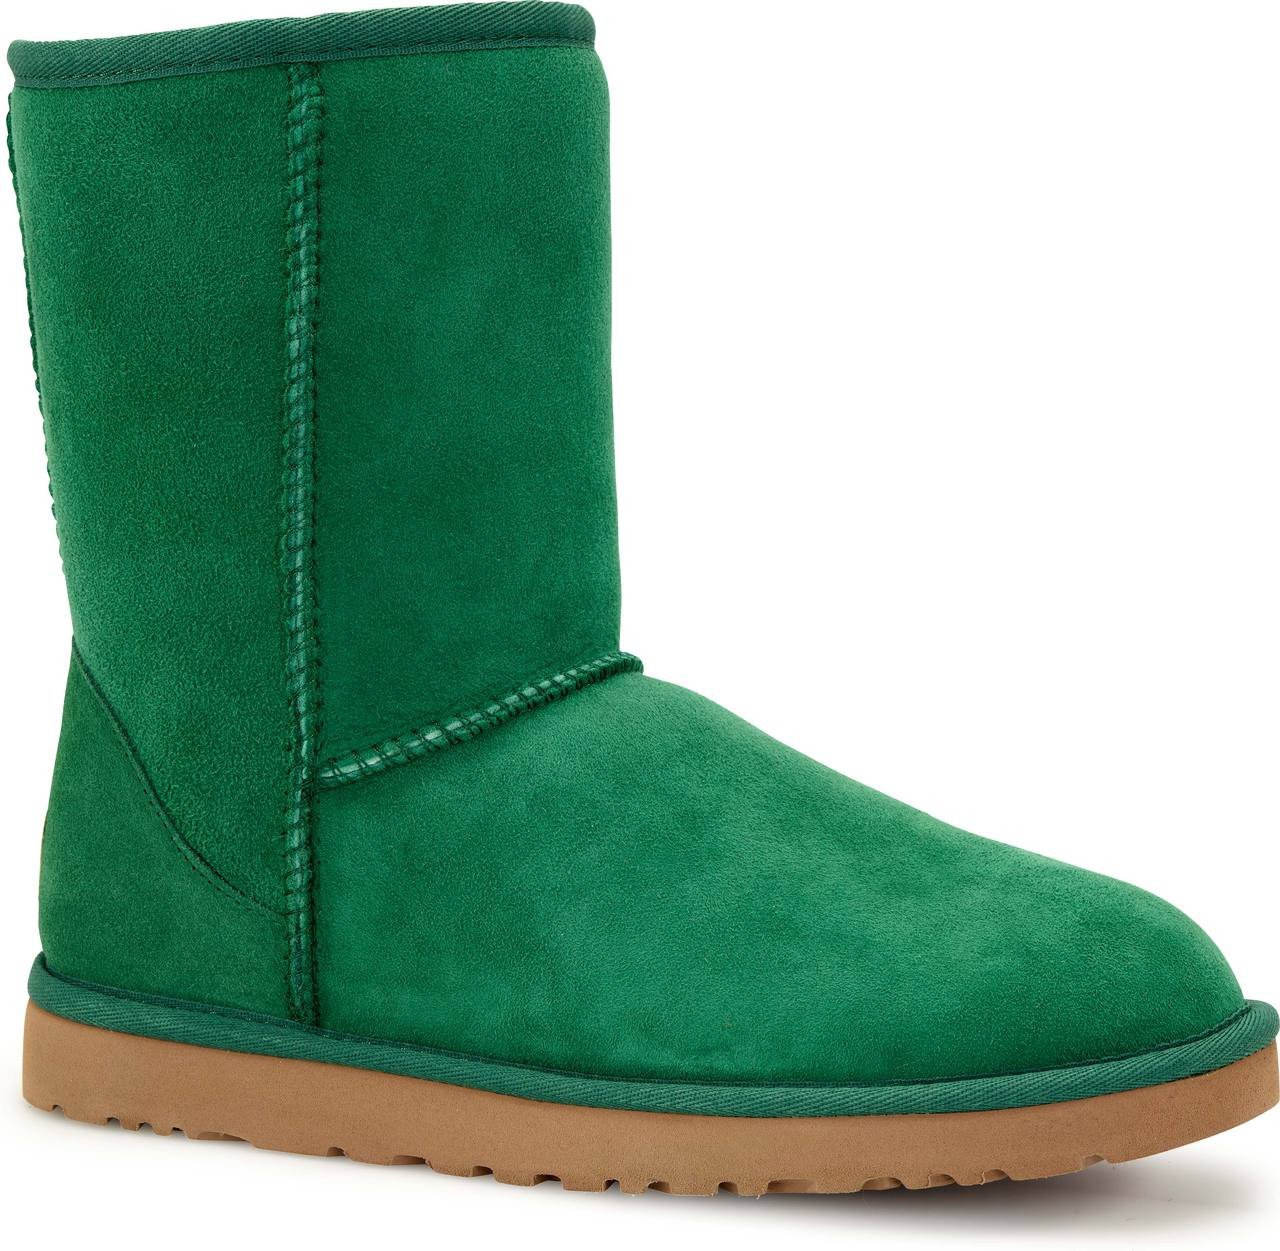 Green Uggs Womens Shoes